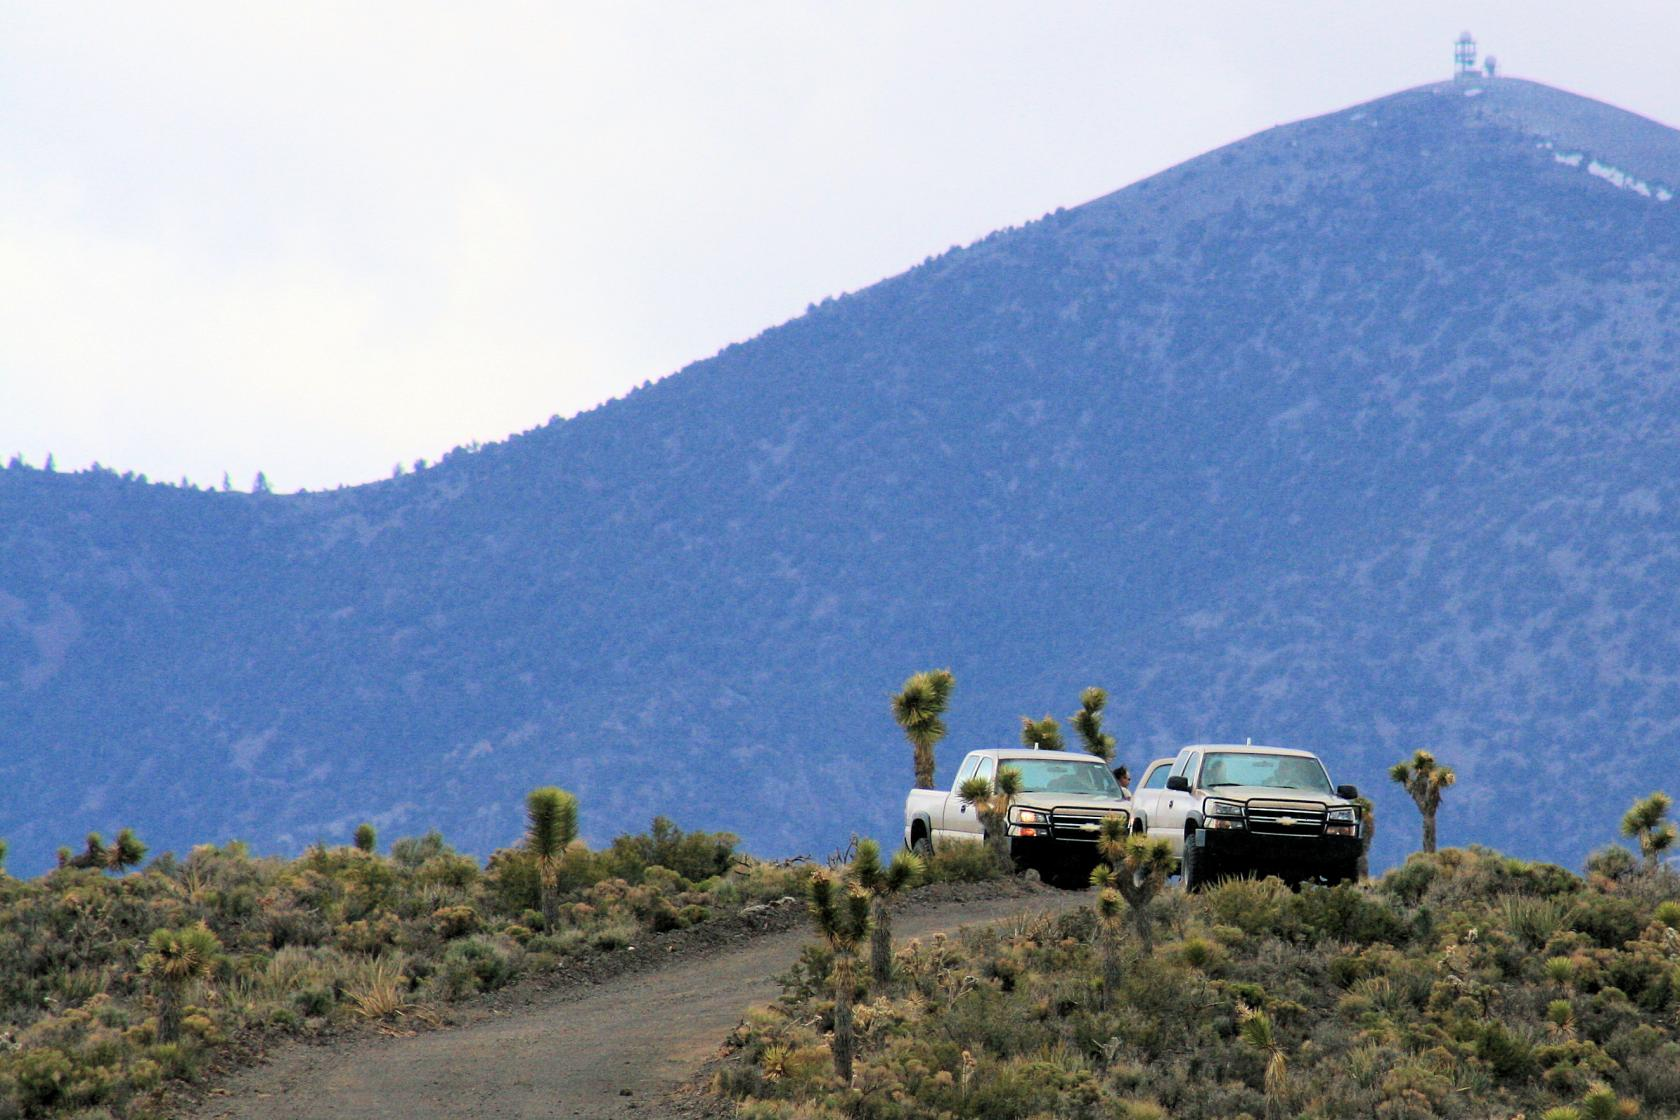 area 51 nevada photo area 51 security officers sit in trucks on a